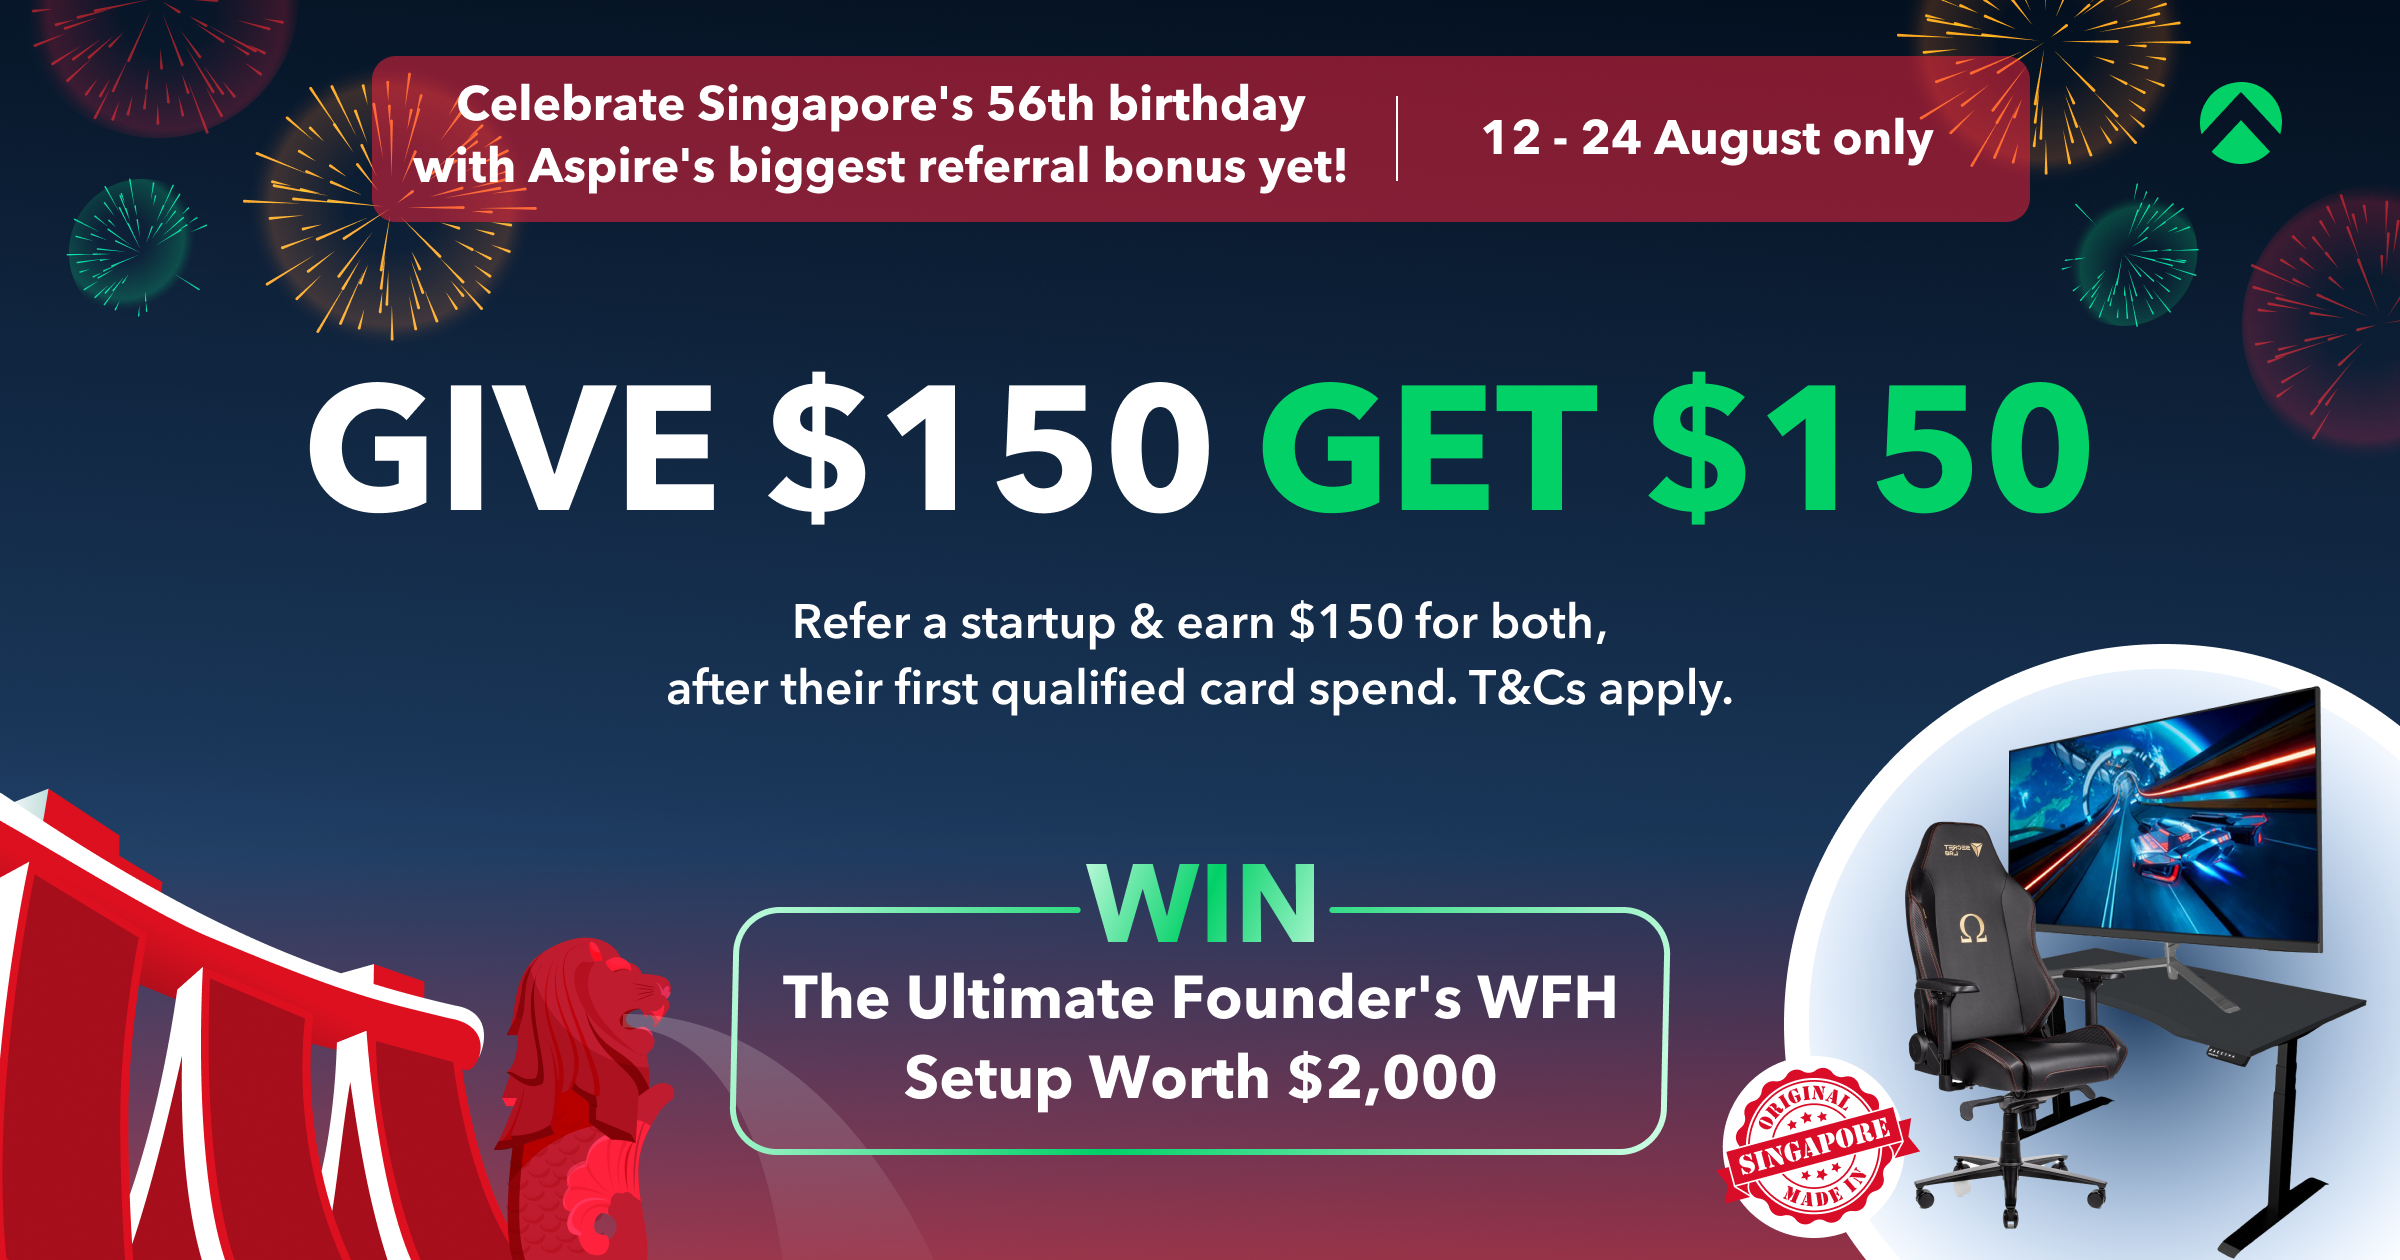 [Aspire National Day Giveaway] Stand To Win The Ultimate Founder's WFH Setup Worth $2,000